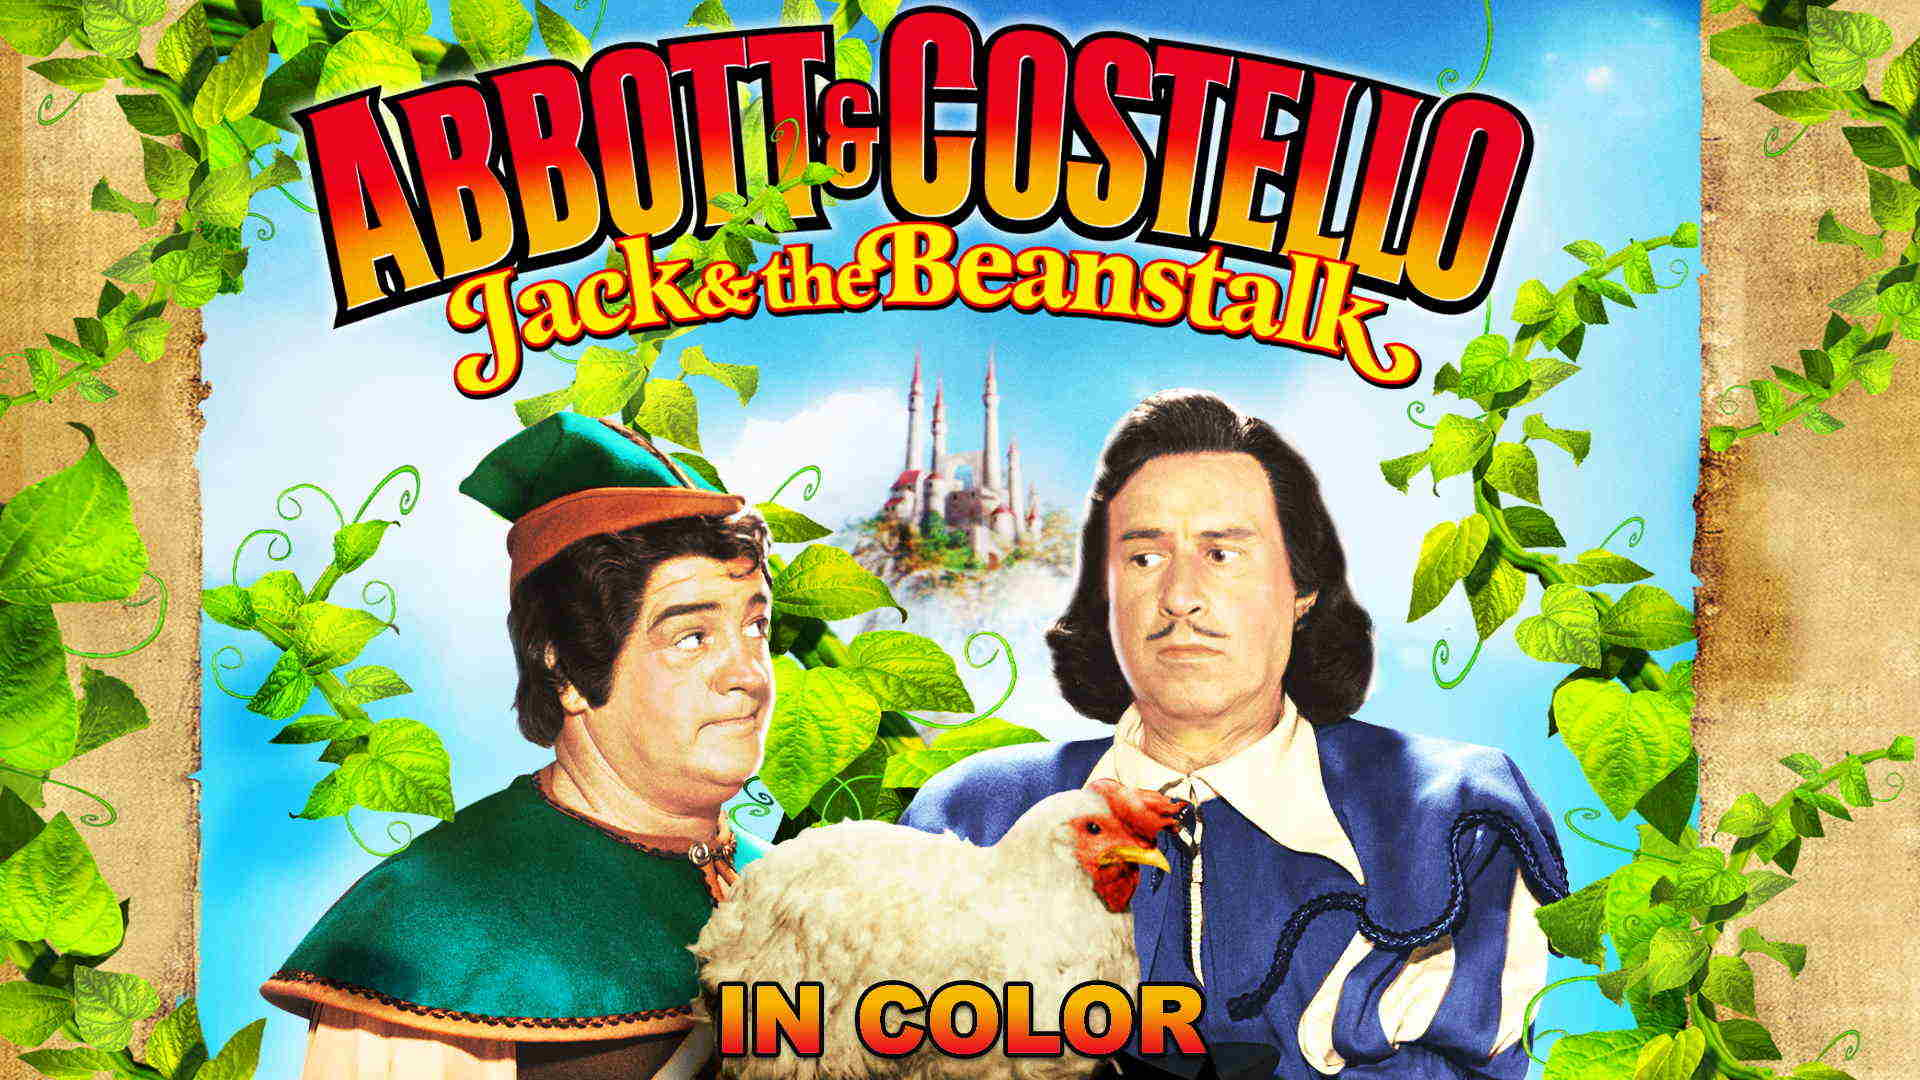 Abbott And Costello: Jack And The Beanstalk